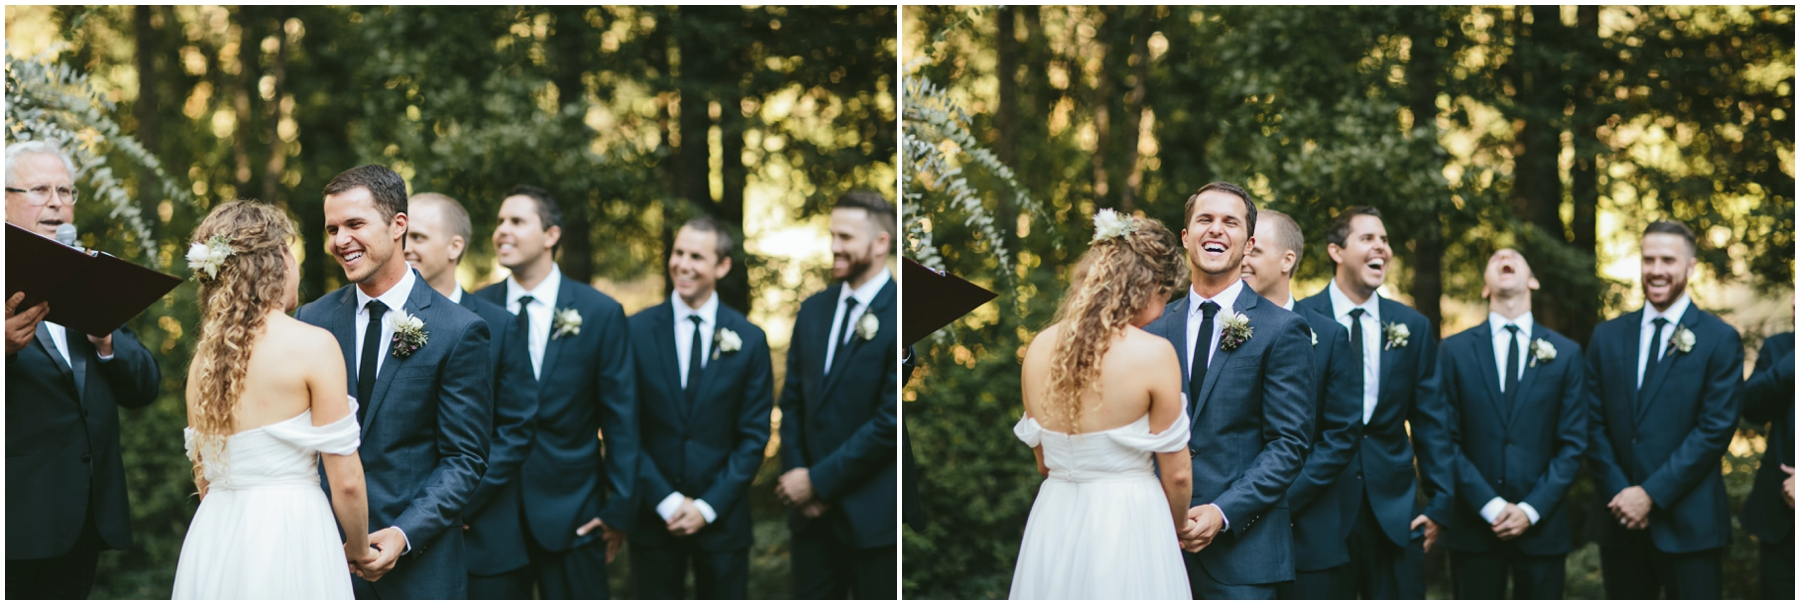 Emily+Paul-WEDDING_KellyBoitanoPhotography_0078